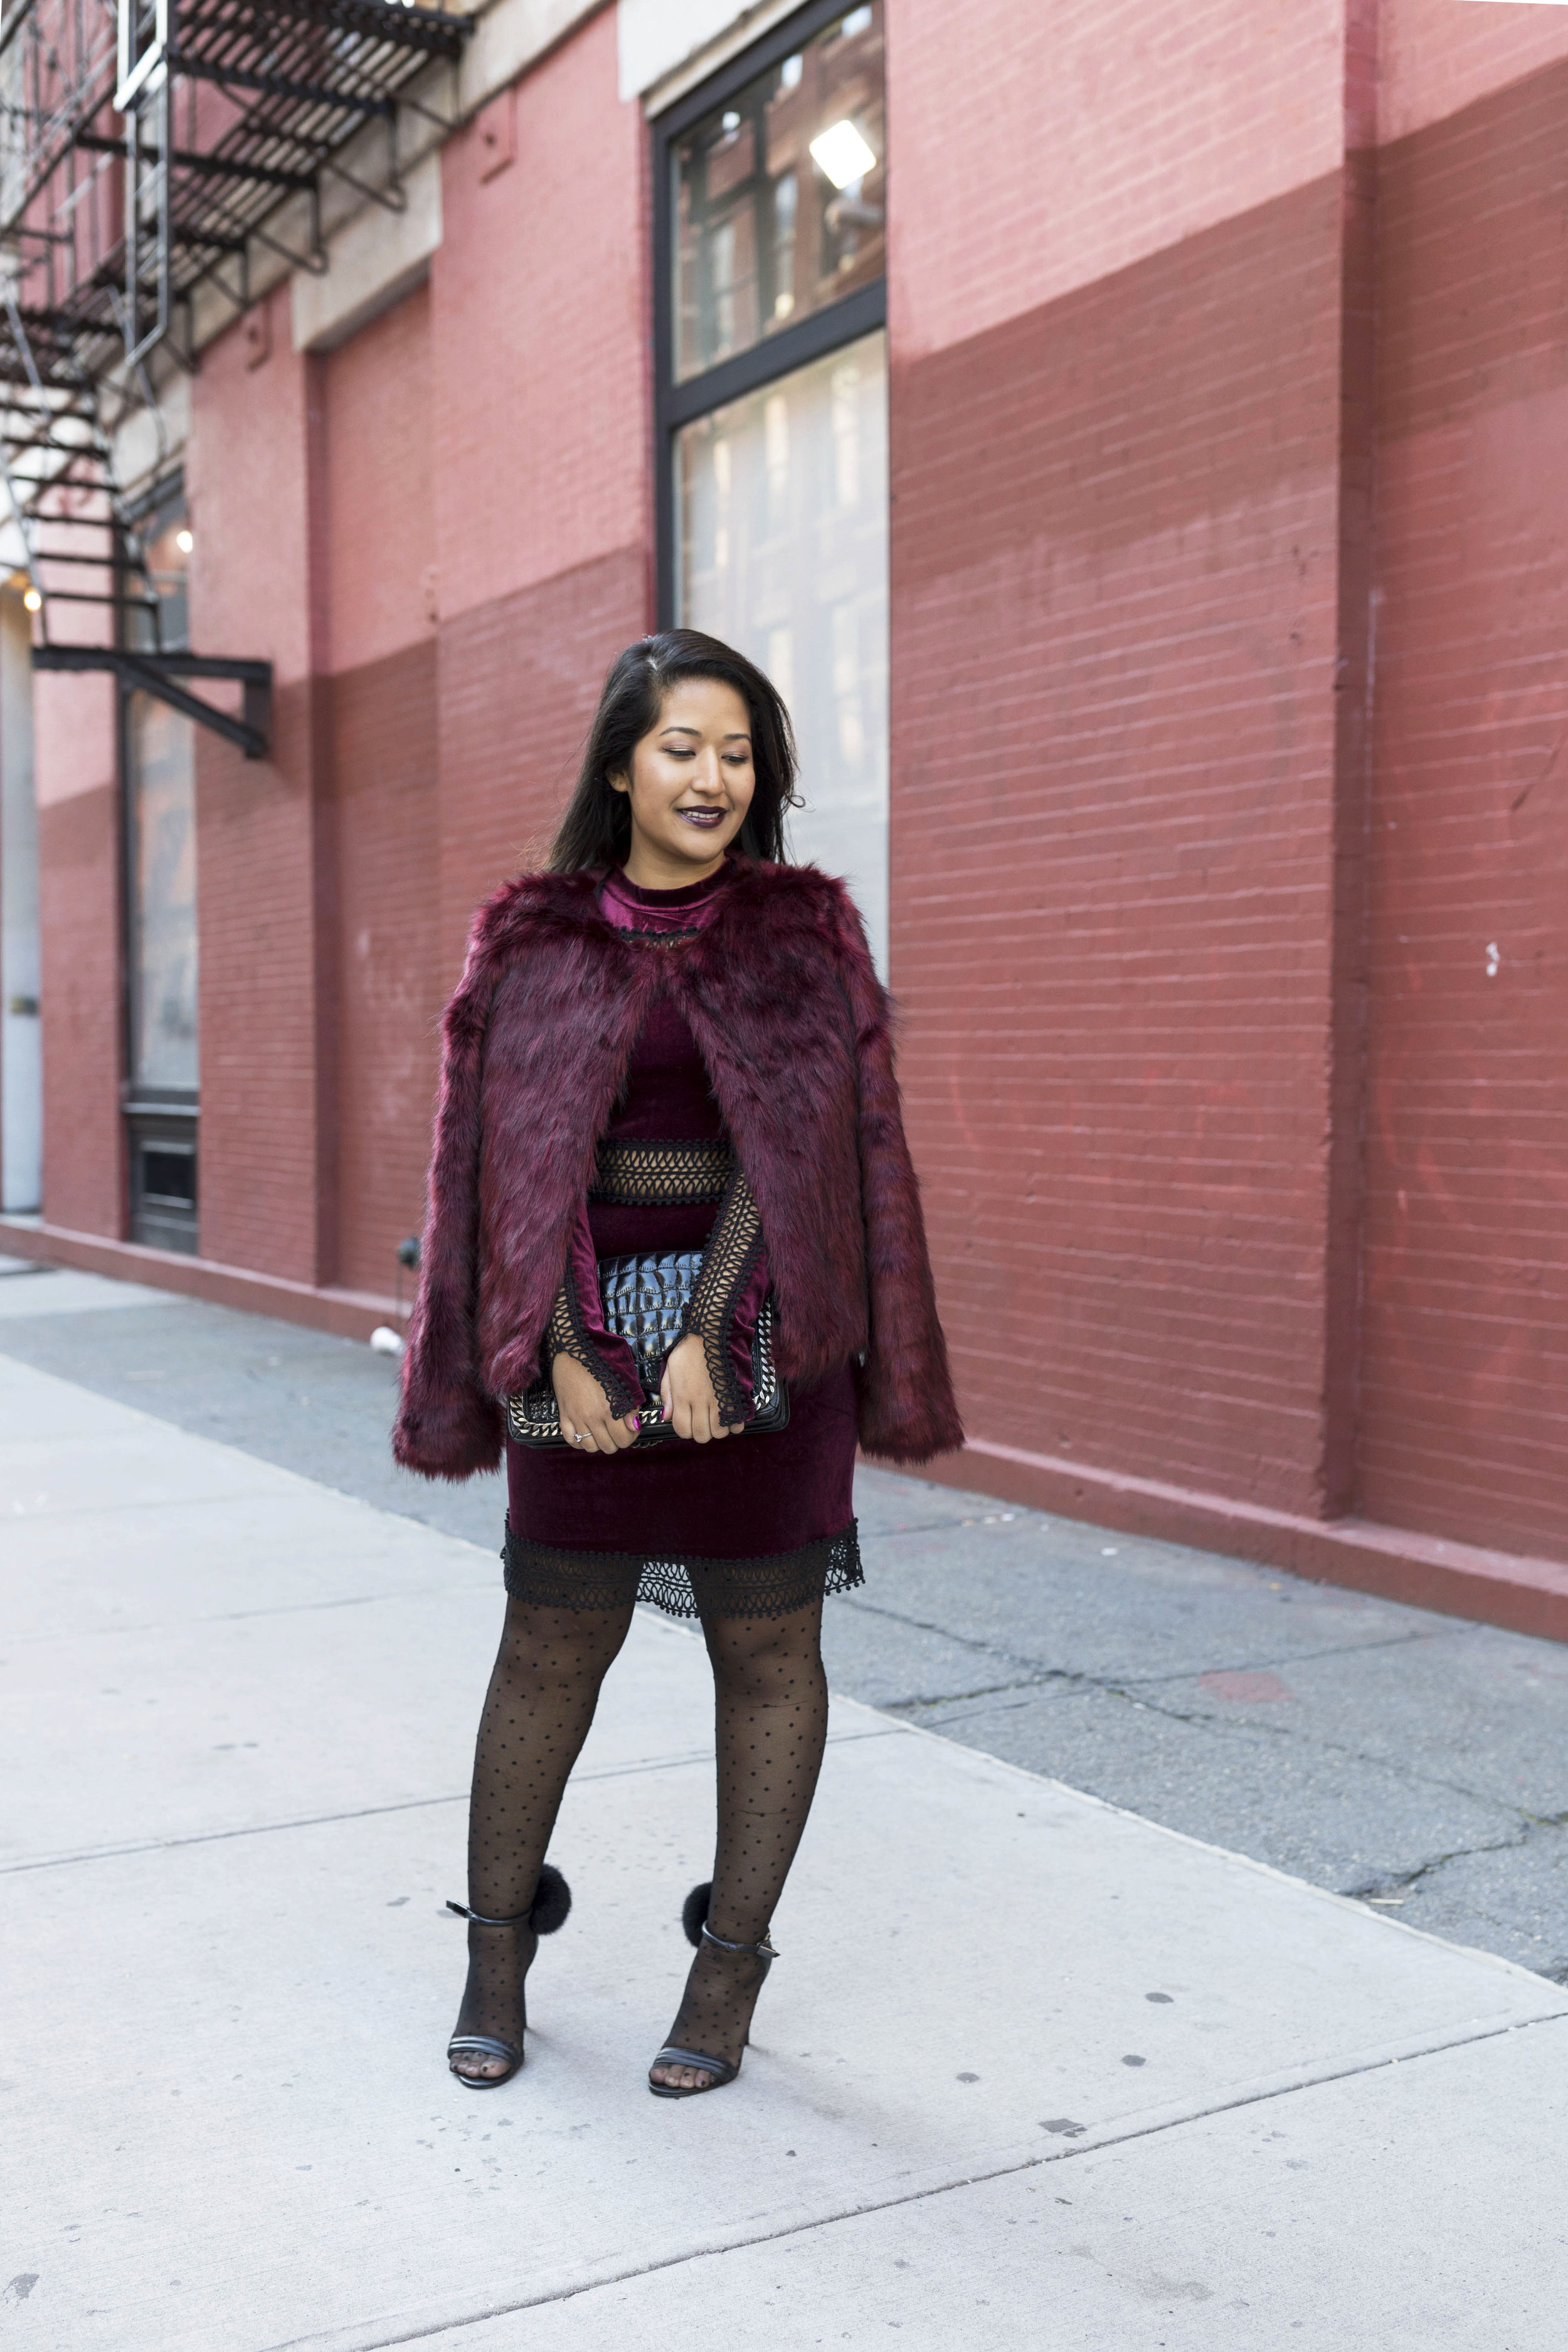 Krity S x Holiday Outfit x Century 21 Burgundy Velvet Dress and Faux Fur7.jpg